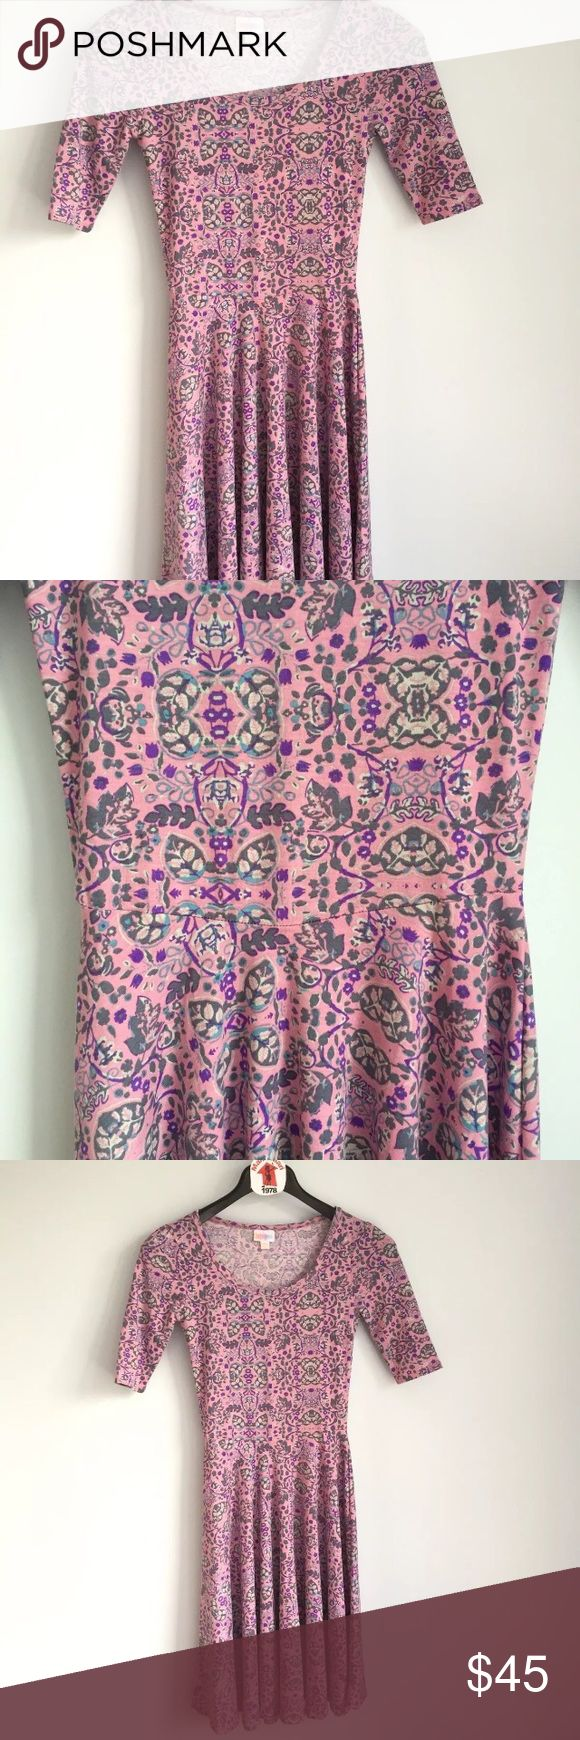 """LuLaRoe Nicole Dress Lilac Purple Floral Women's LuLaRoe LLR Nicole Dress  Lilac Purple Floral Print   Short Sleeve  Fitted Bodice A-line Skirt  Knee Length  New with out tags  Size XXS  Measures 14"""" across chest arm pit to arm pit laying flat  Length is 41"""" long from top of shoulder to bottom front hem LuLaRoe Dresses"""